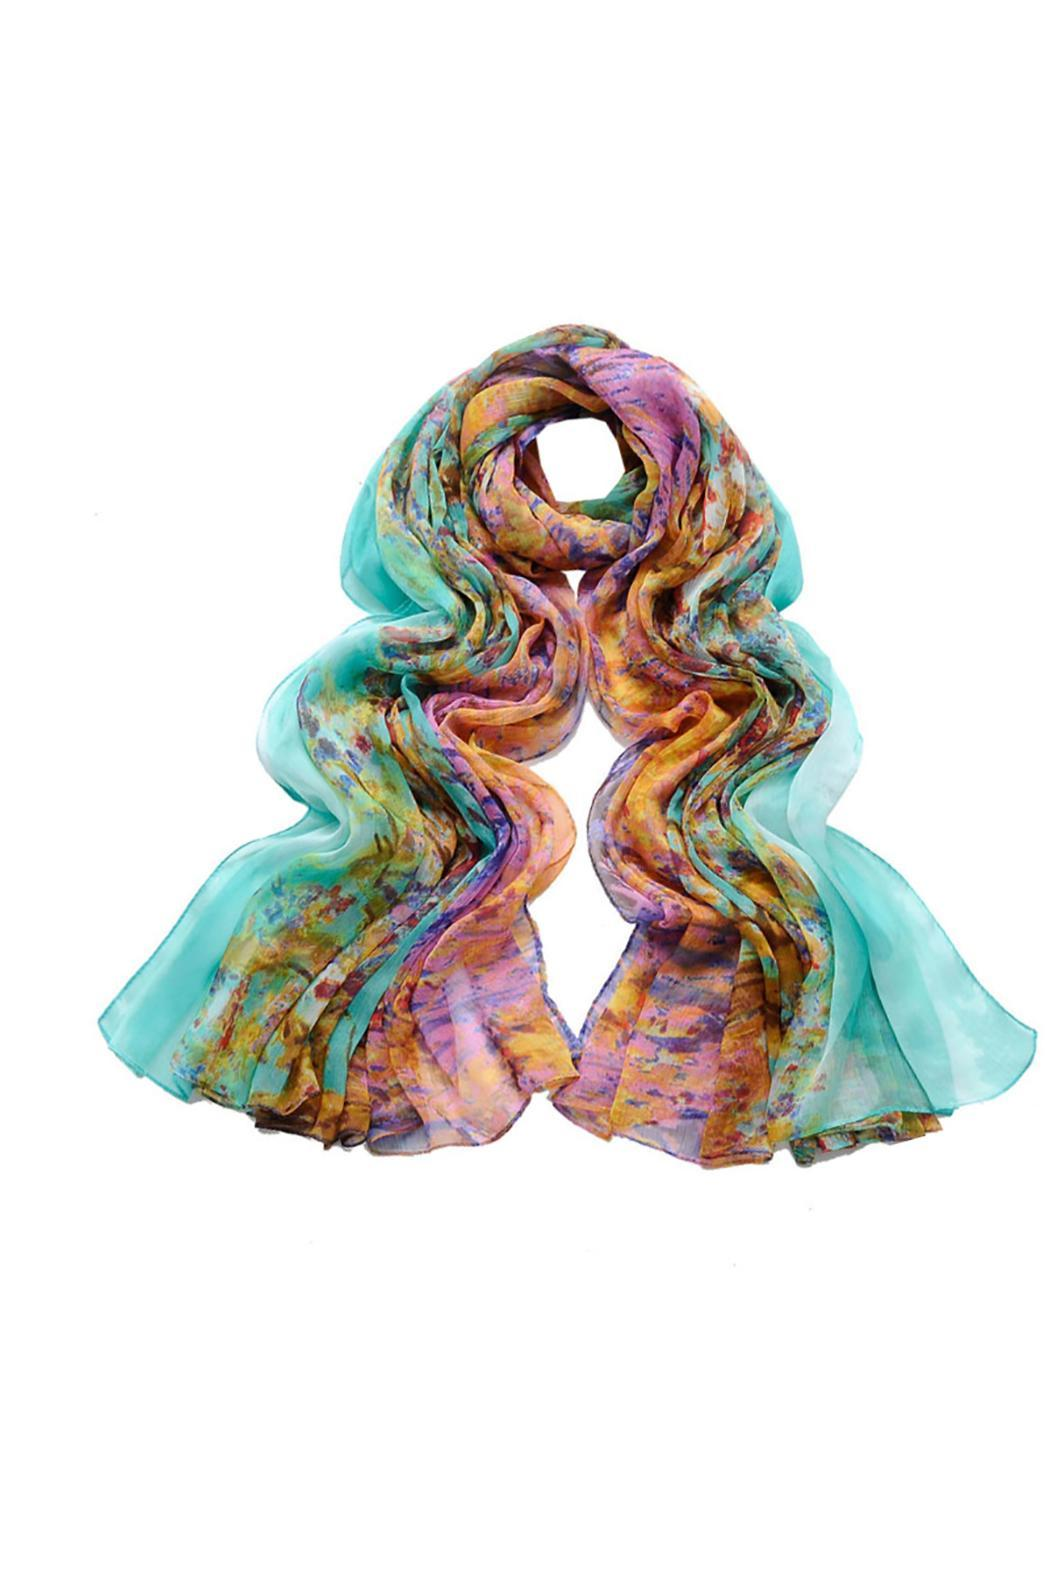 Violet Del Mar Digital Monet Scarf - Main Image